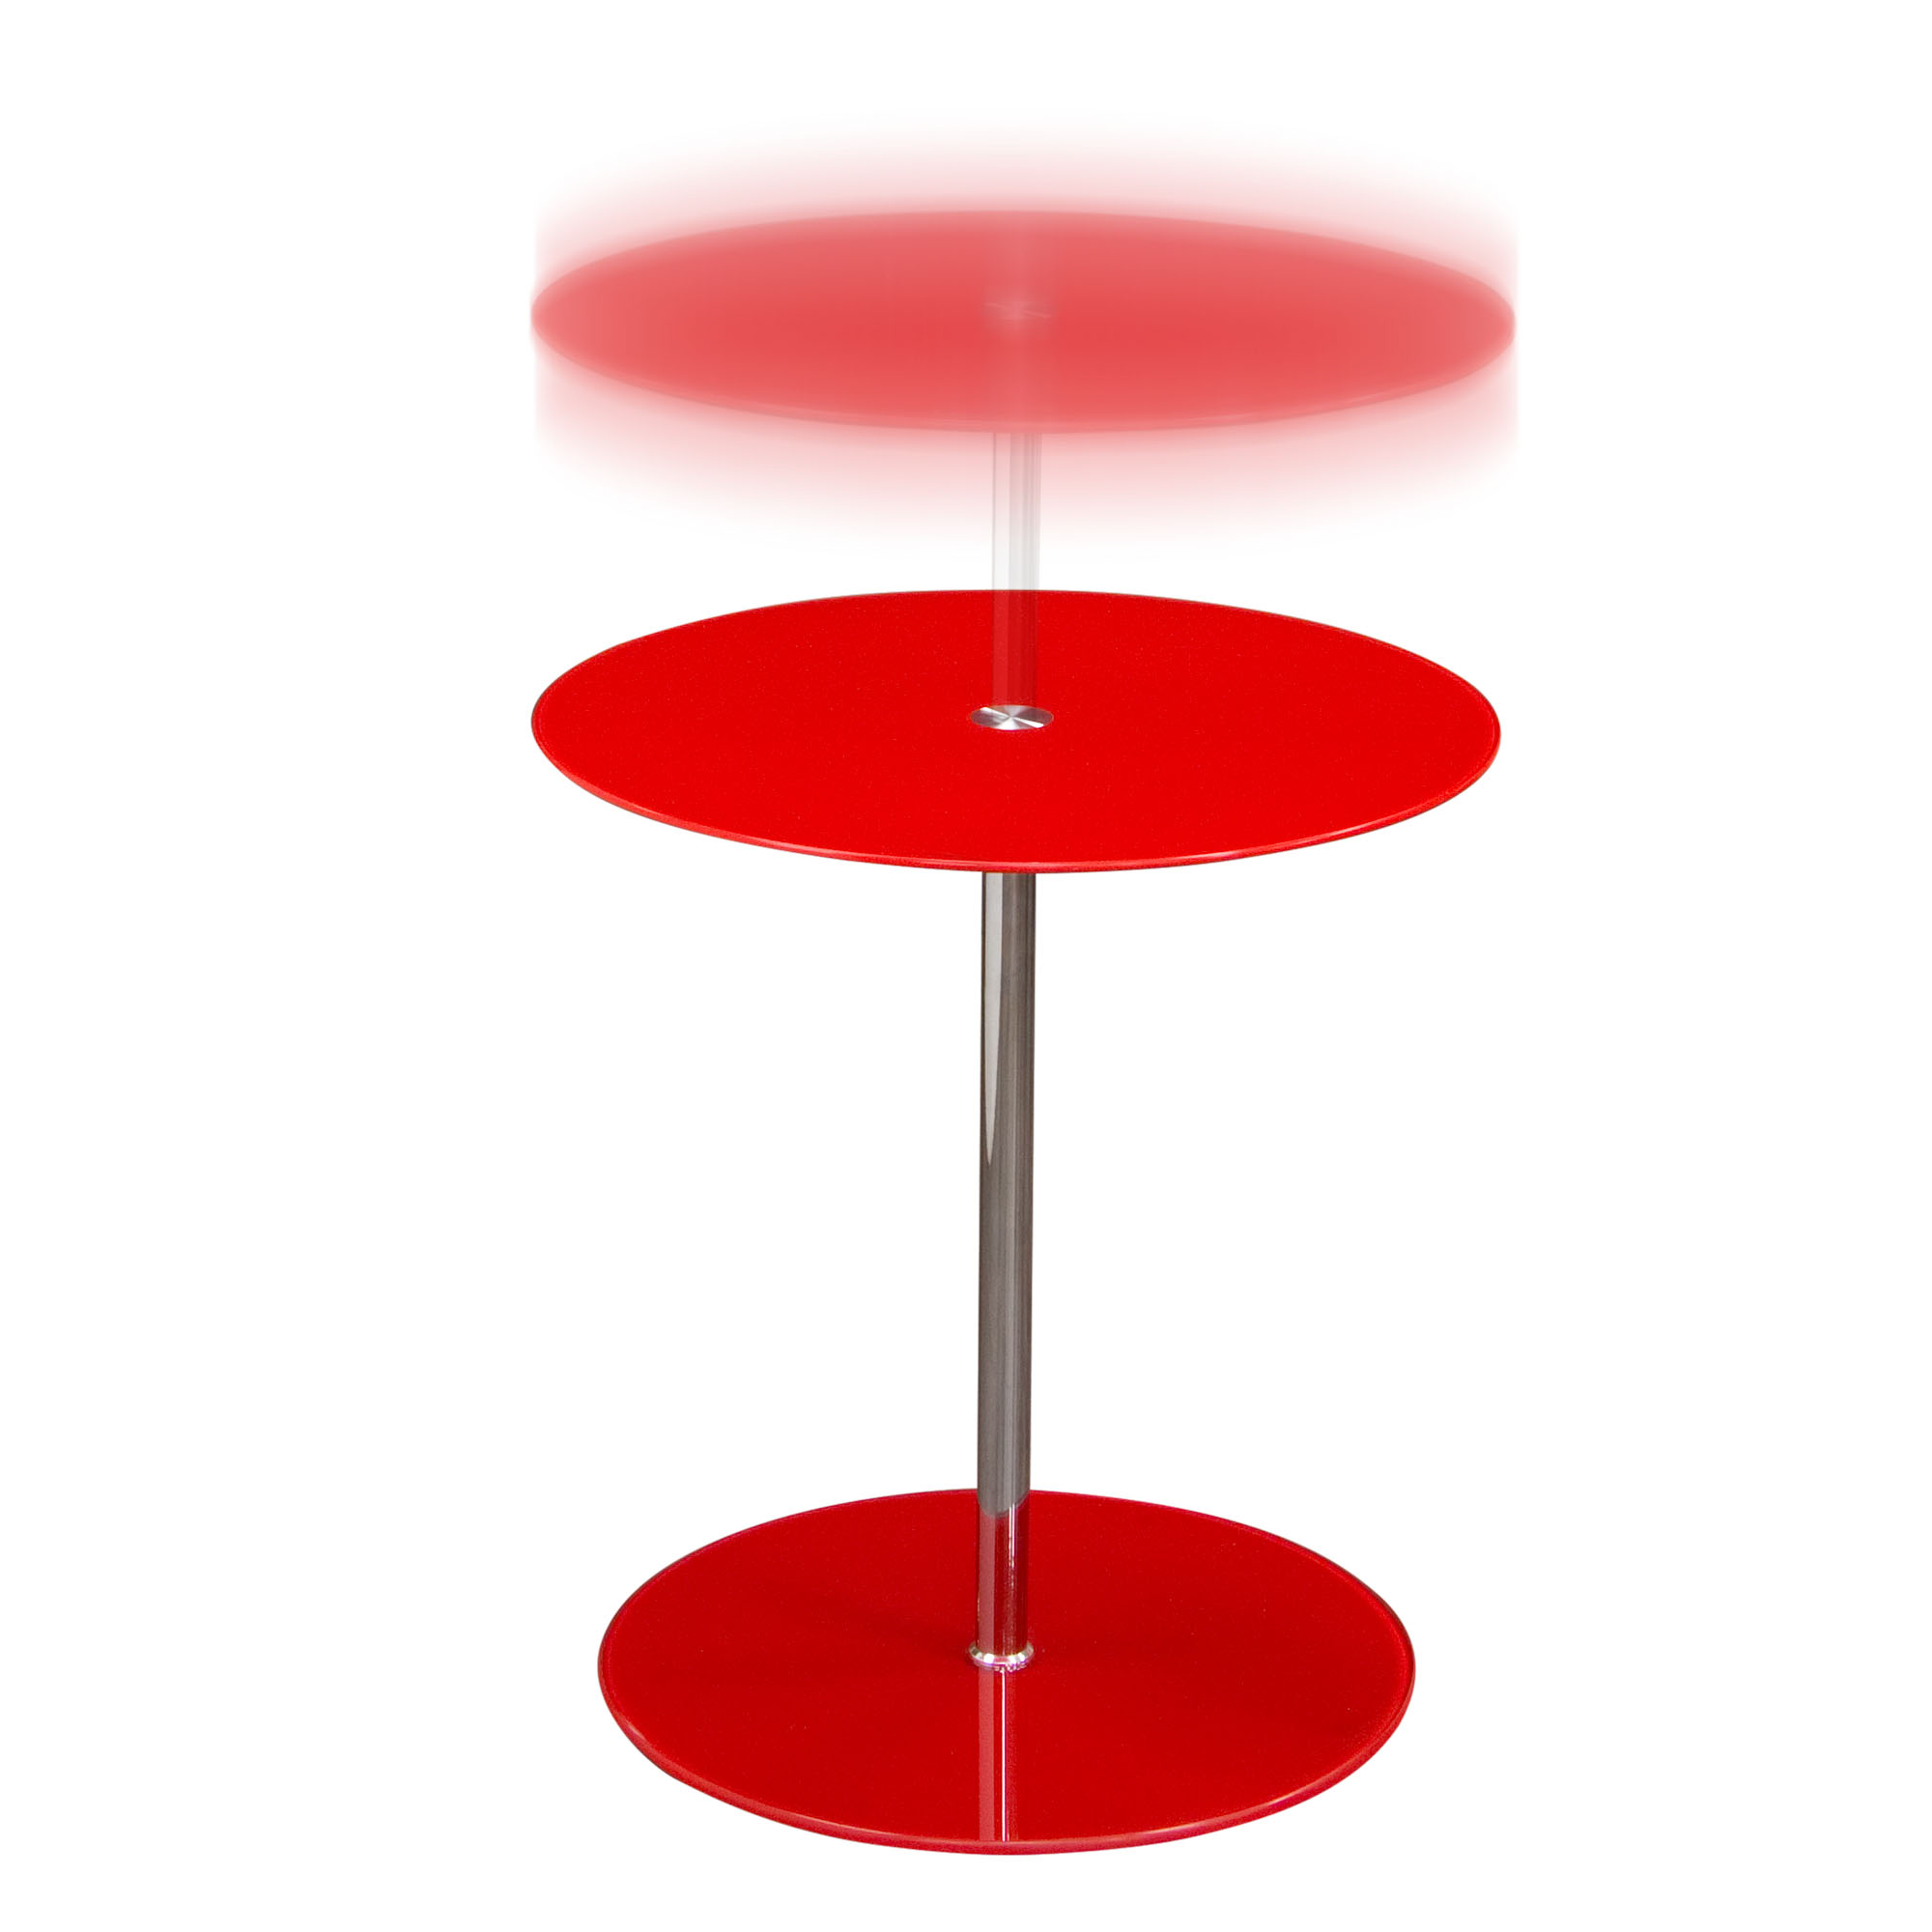 orbit adjustable height glass accent table red big orbitetre target threshold side dale lamp modern nic mini lanterns decorative accessories for living room oval wood end metal